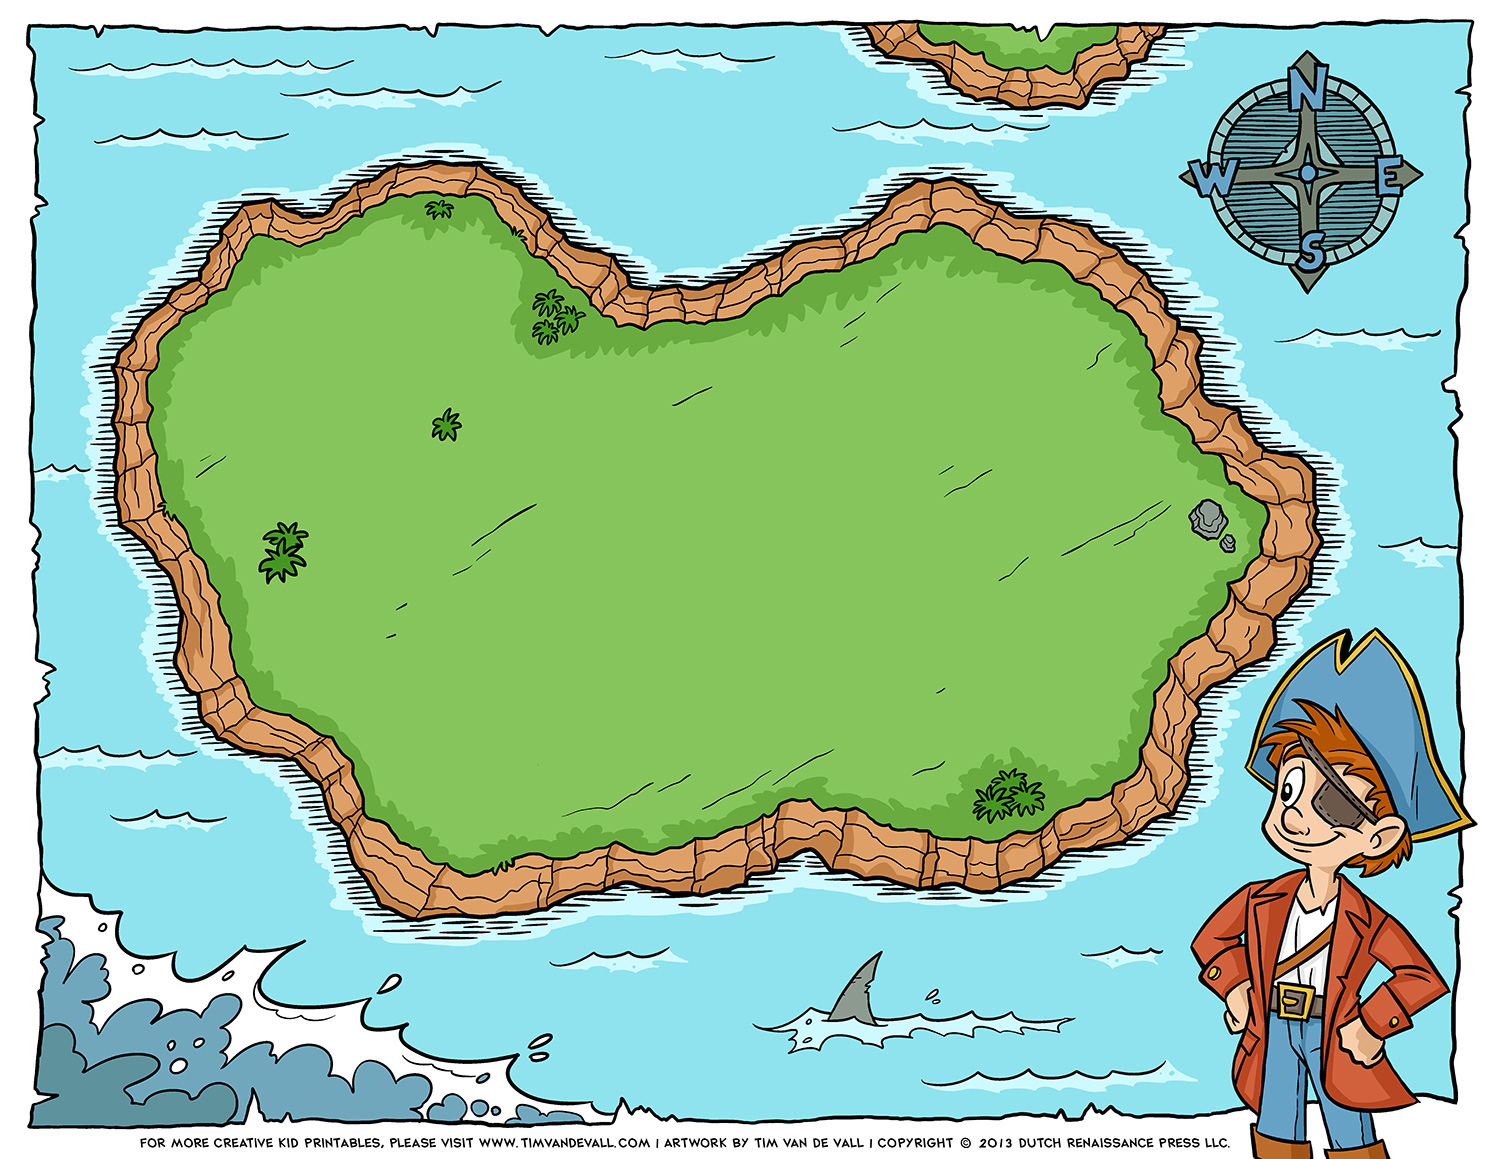 Blank Pirate Island Map Png & Free Blank Pirate Island Map.